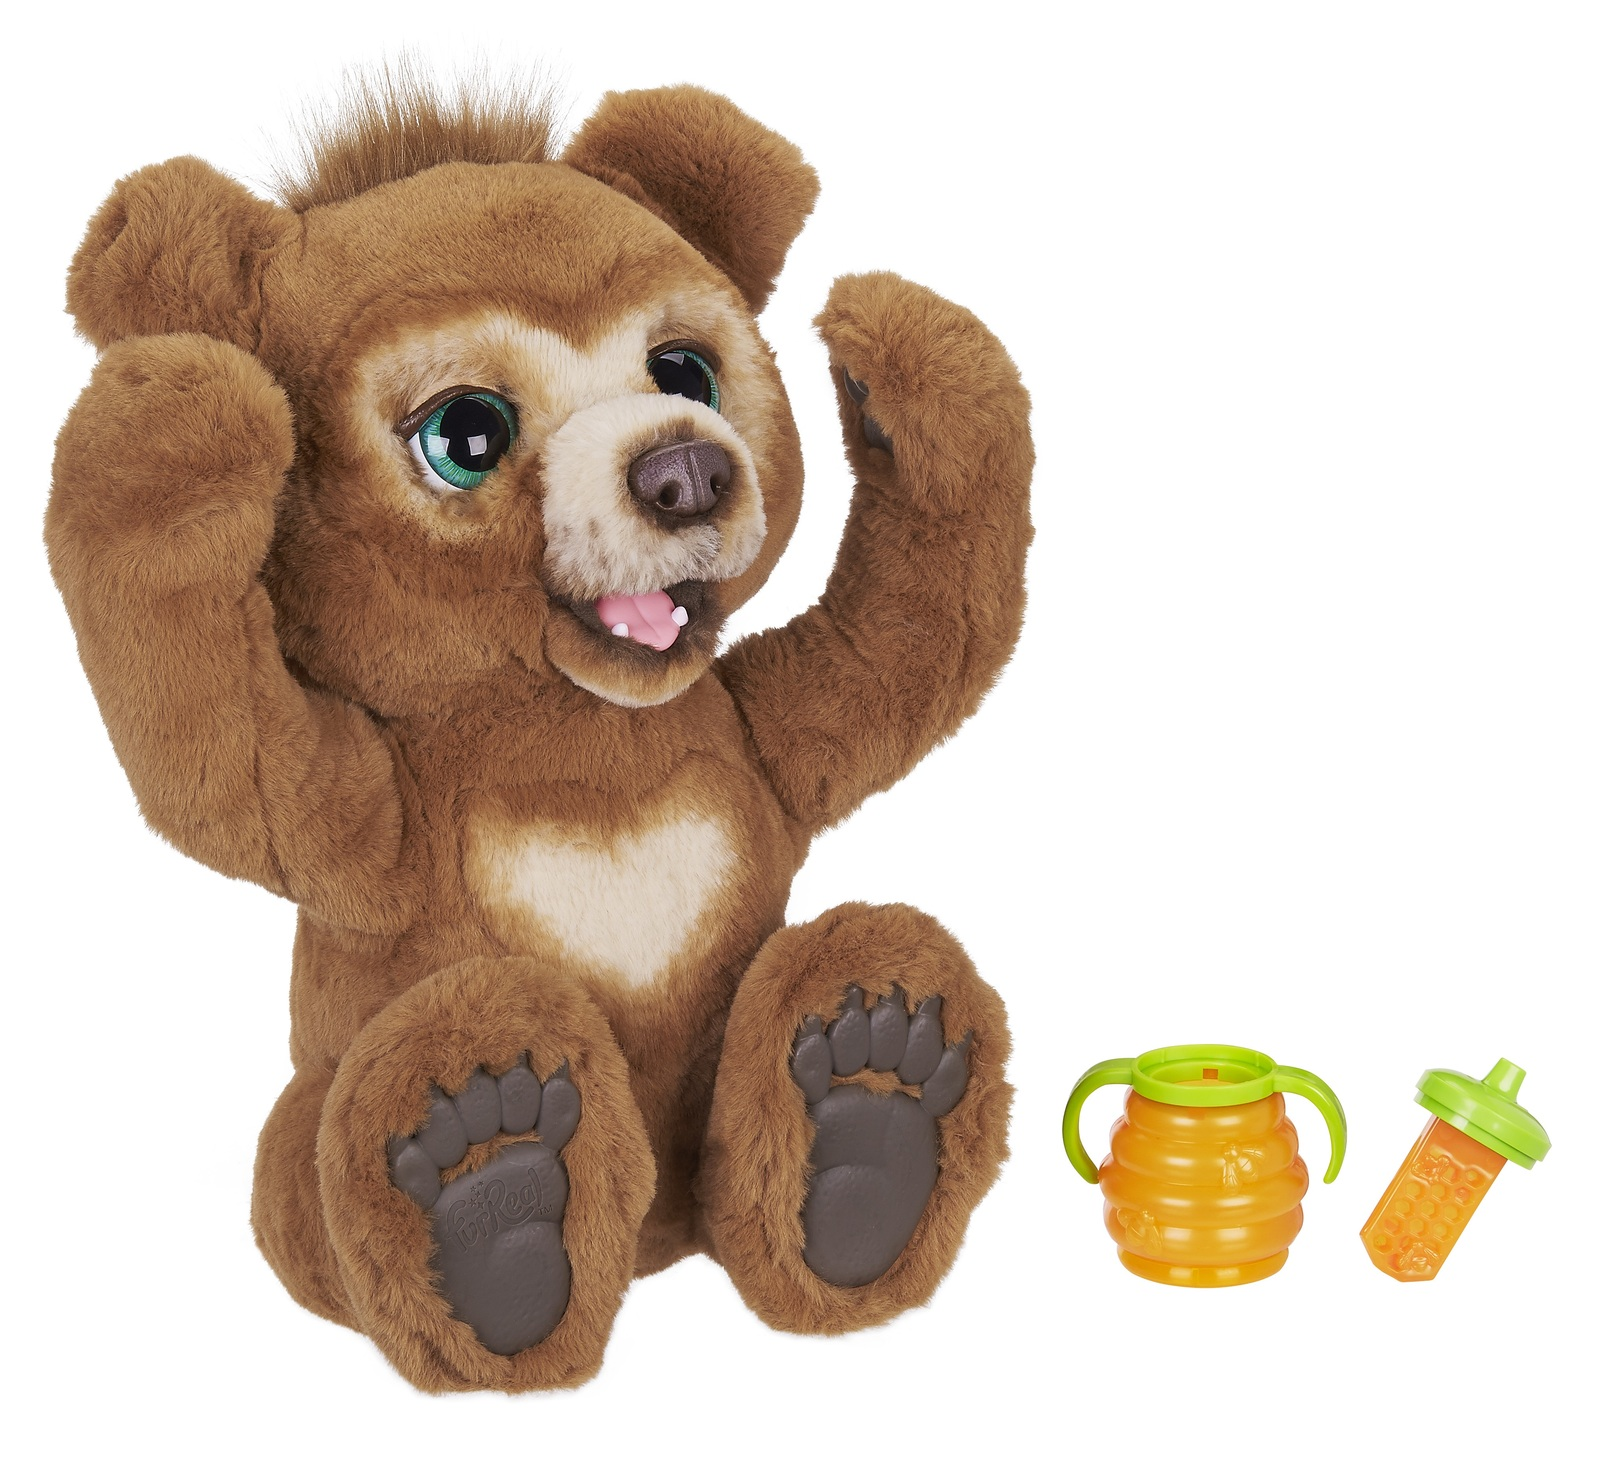 FurReal Friends: Cubby The Curious Bear - Interactive Plush image